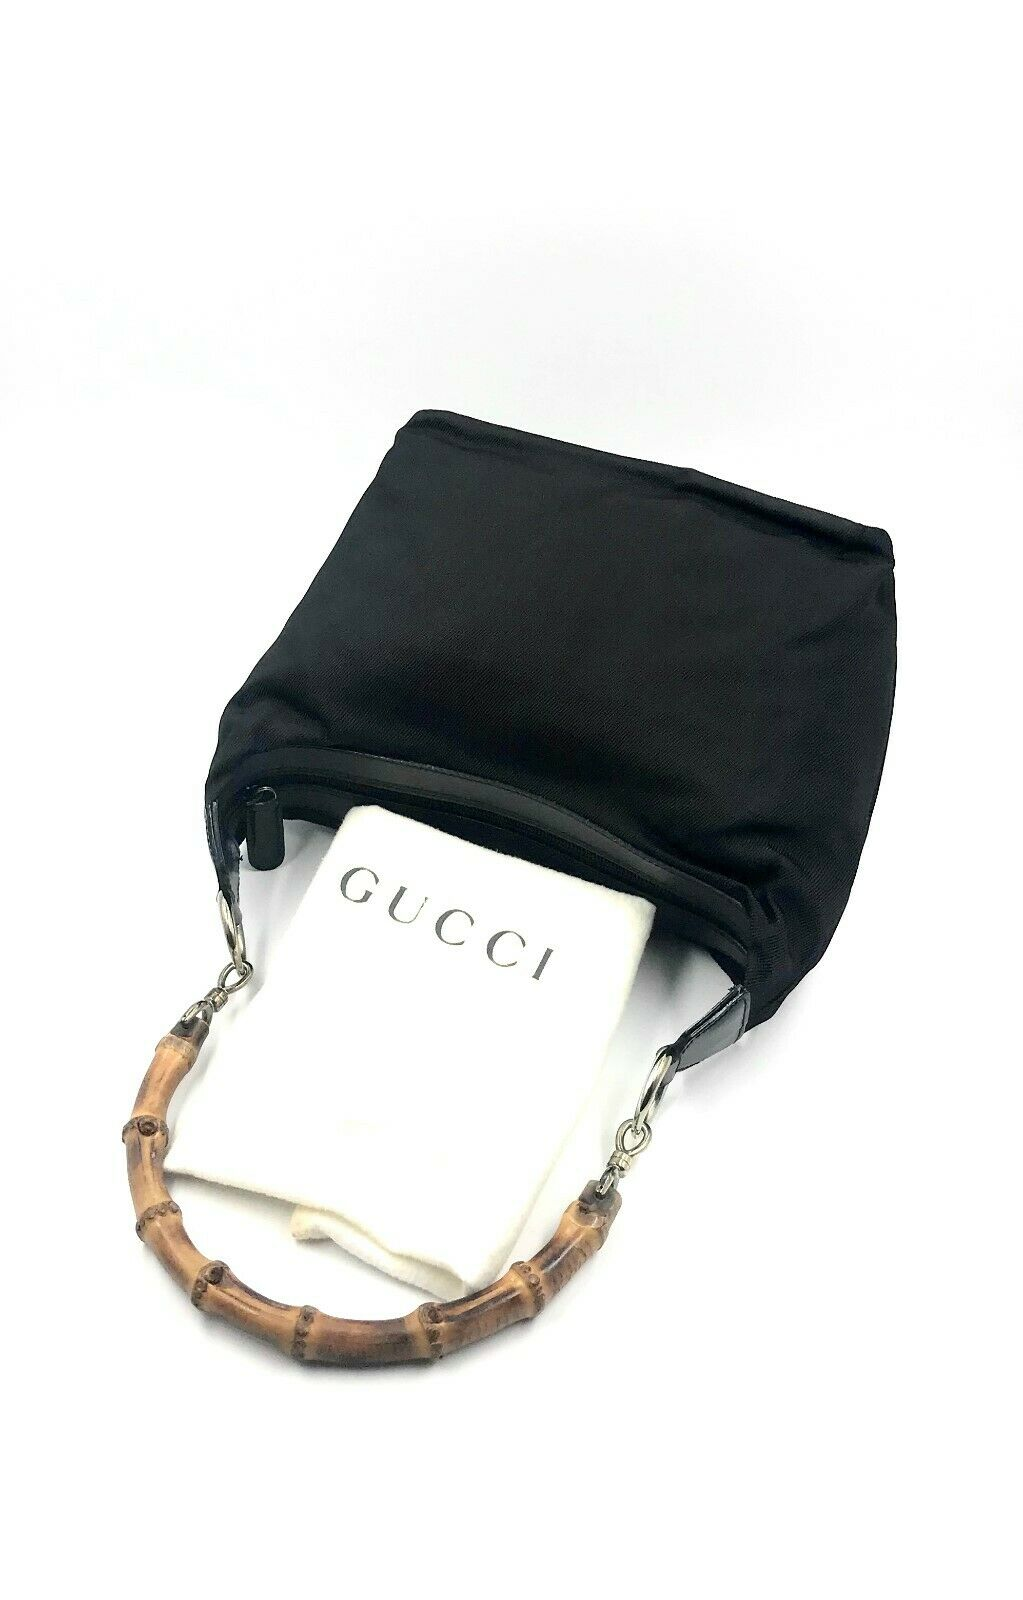 Vintage Authentic Gucci Bamboo Leather Trimmed Bl… - image 12